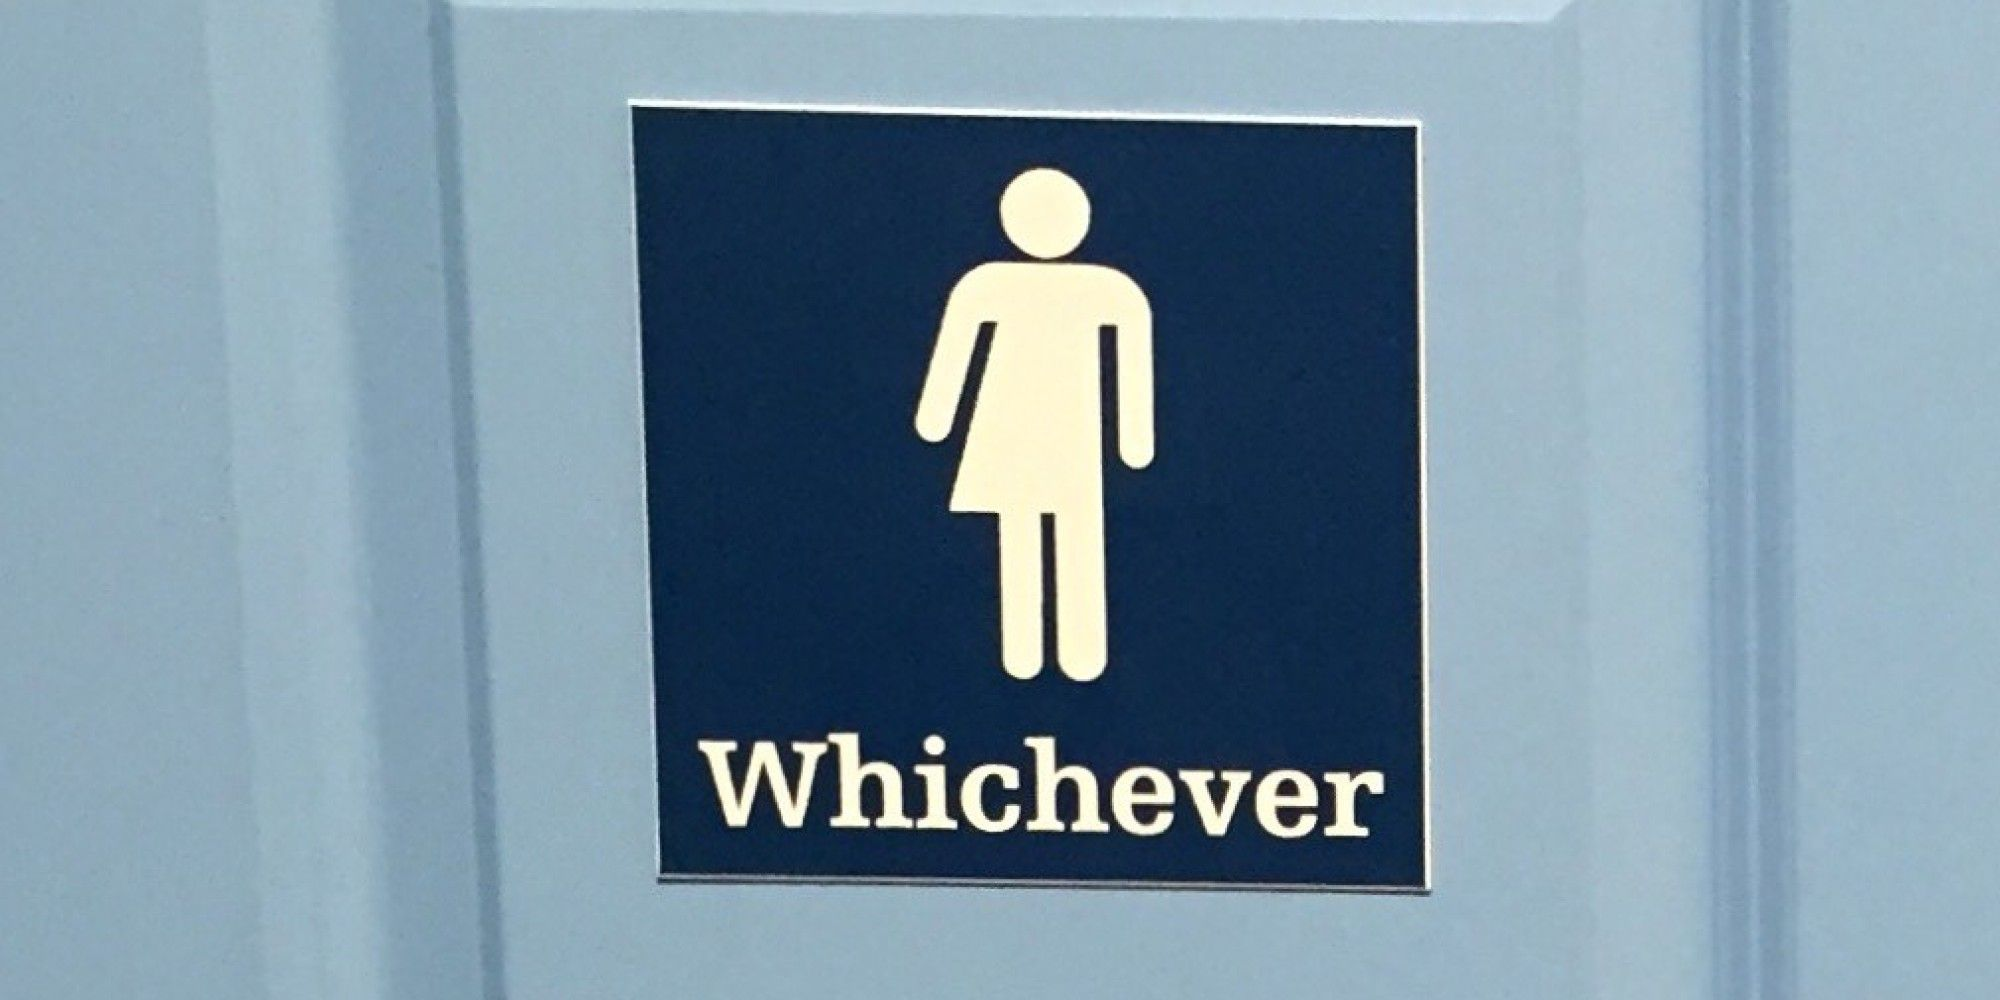 signss neutral bathrooms of rights designs schools figures size in full public gender home all signs for stick restrooms intended bathroom transgender